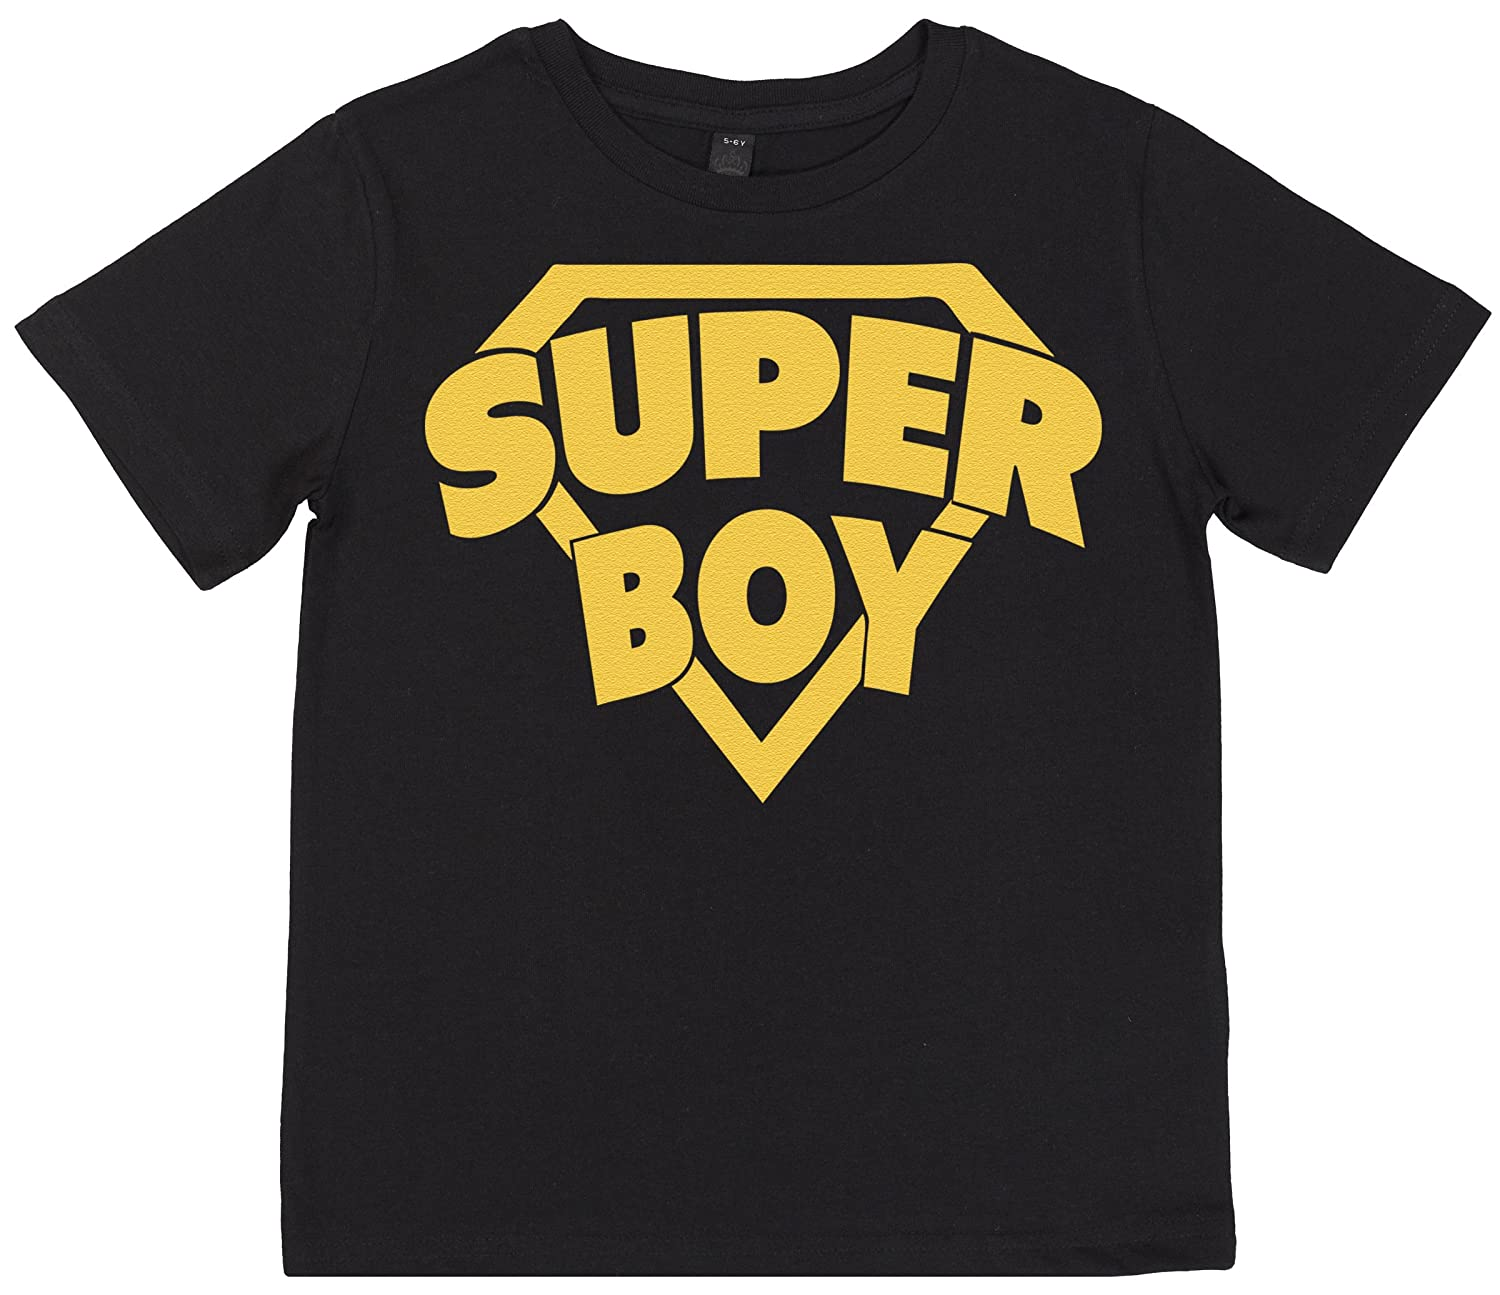 Boys Gift Kids T Shirt Girls Gift Super Boy Girls T-Shirt SR Boys T-Shirt Unisex T-Shirt